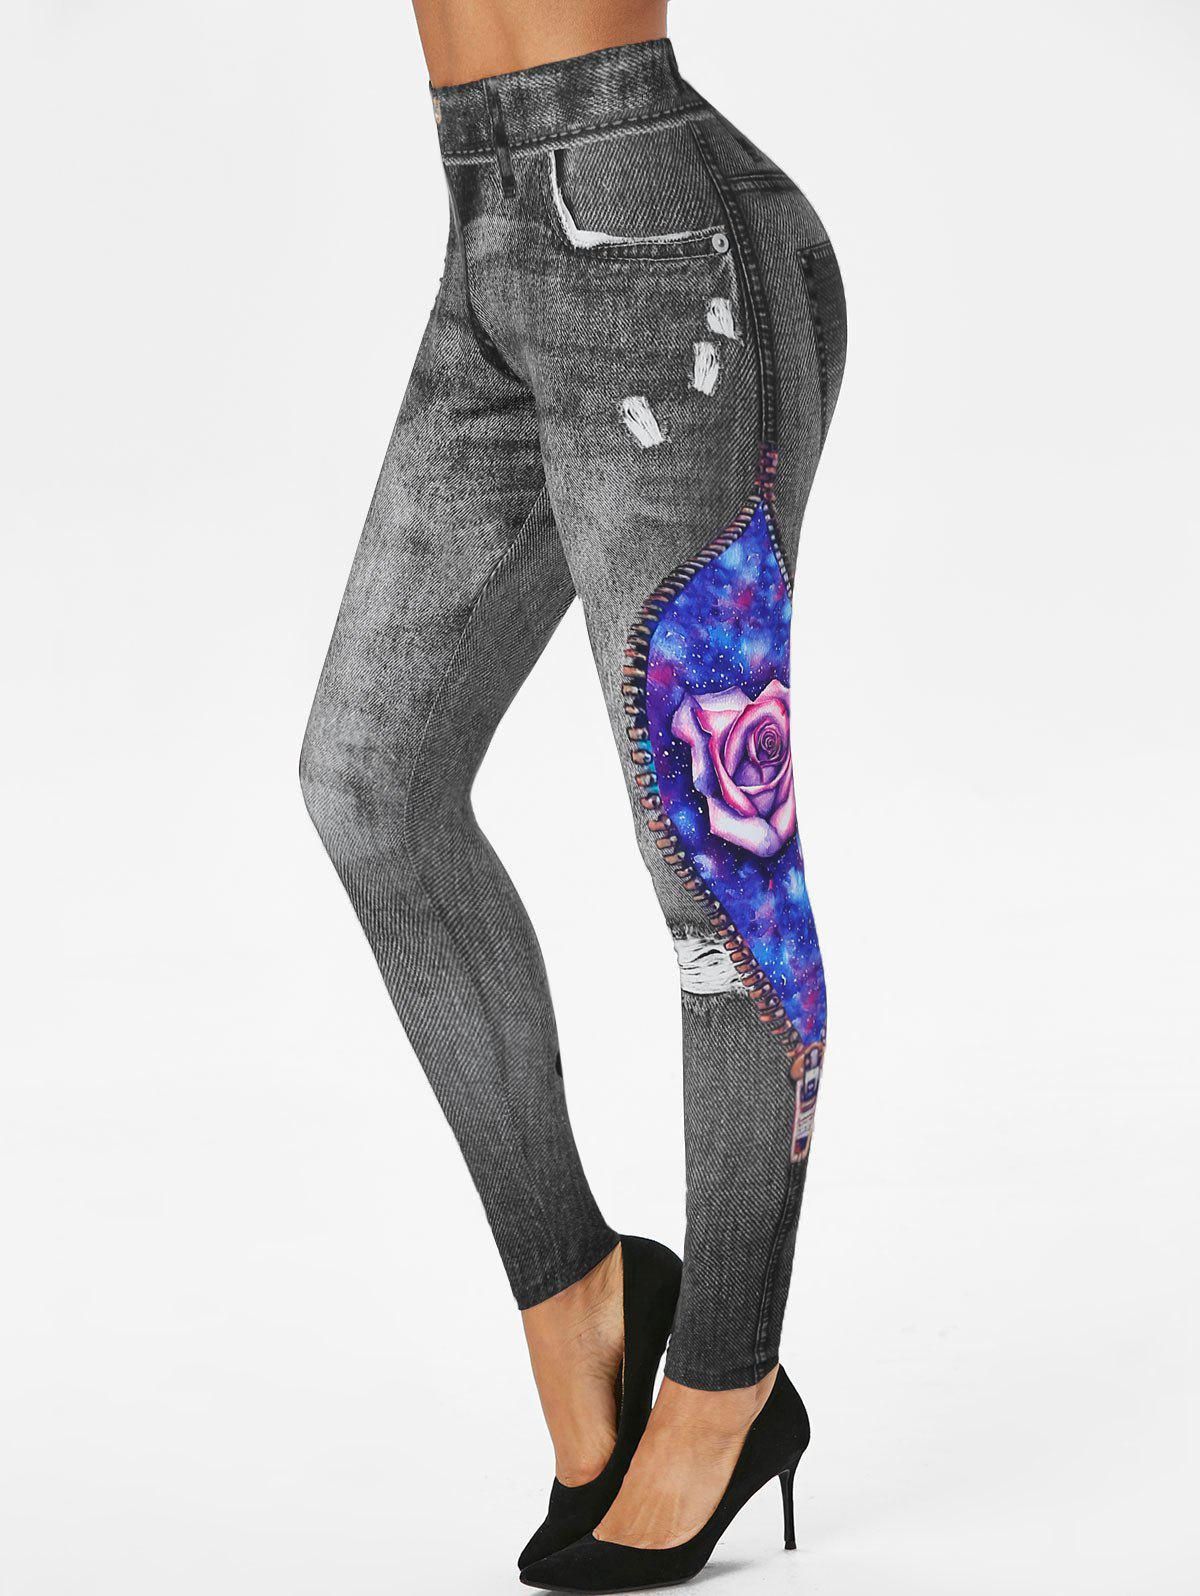 3D Ripped Print Planet Rose Galaxy Skinny Jeggings - ASH GRAY 2XL